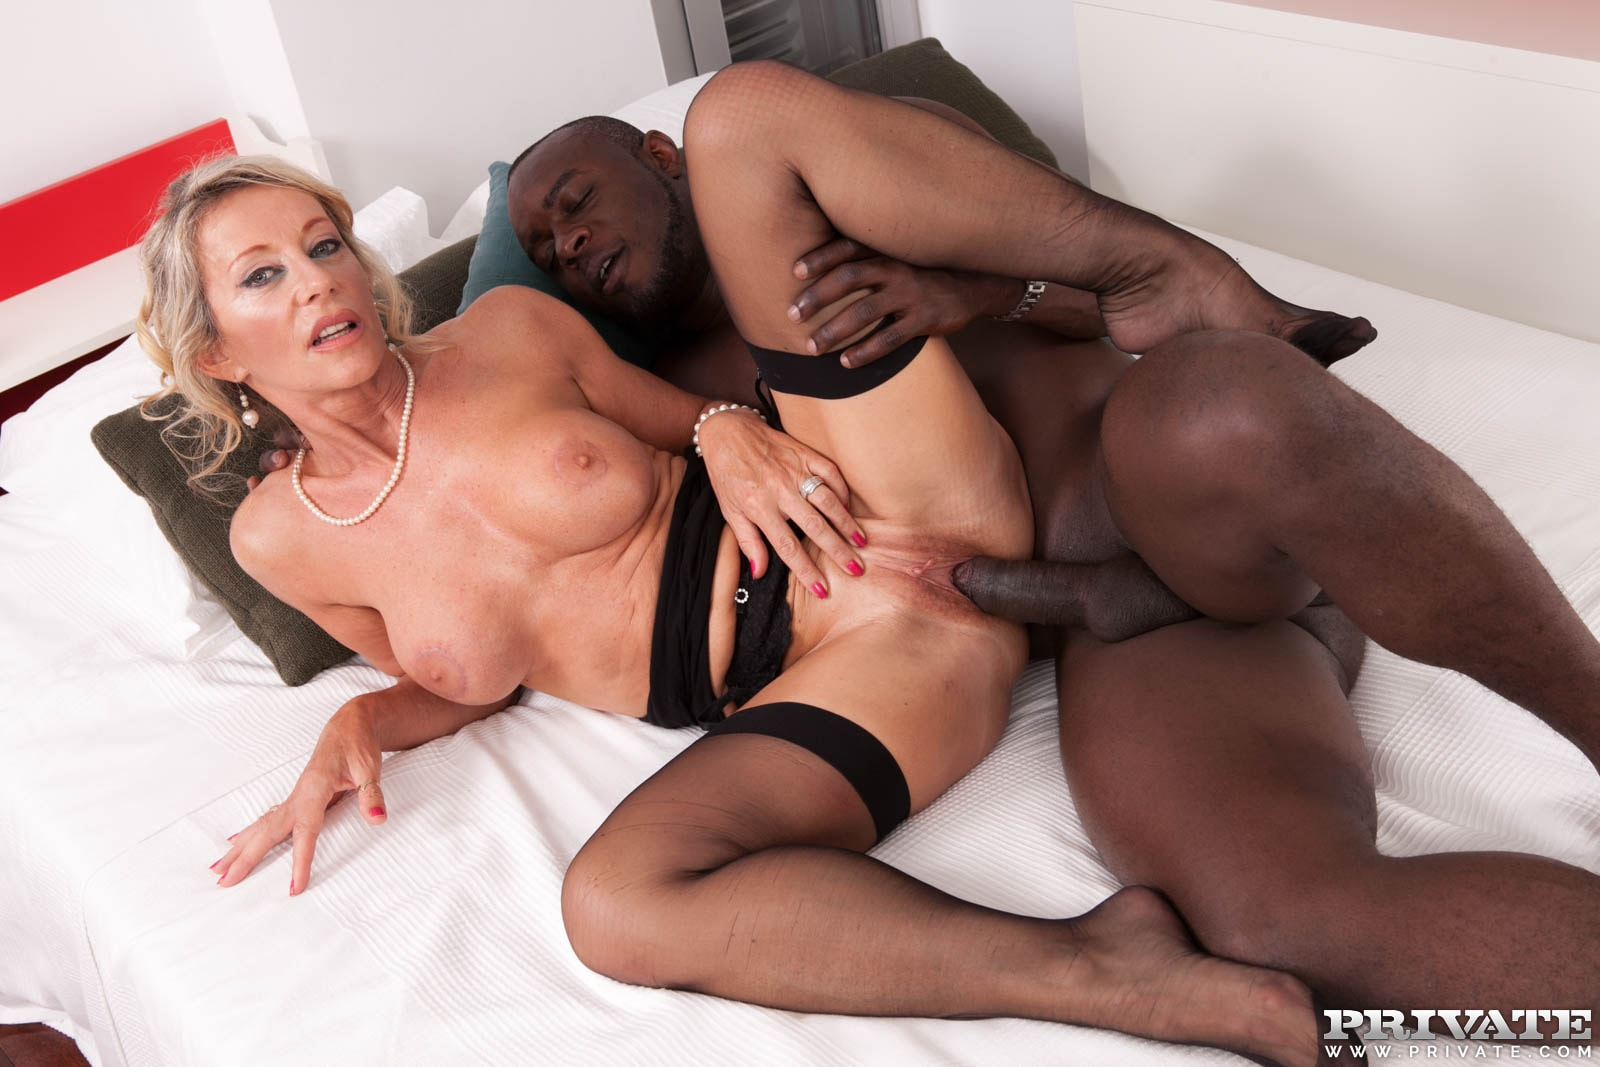 Mature blonde pulls out her toys to fuck 3